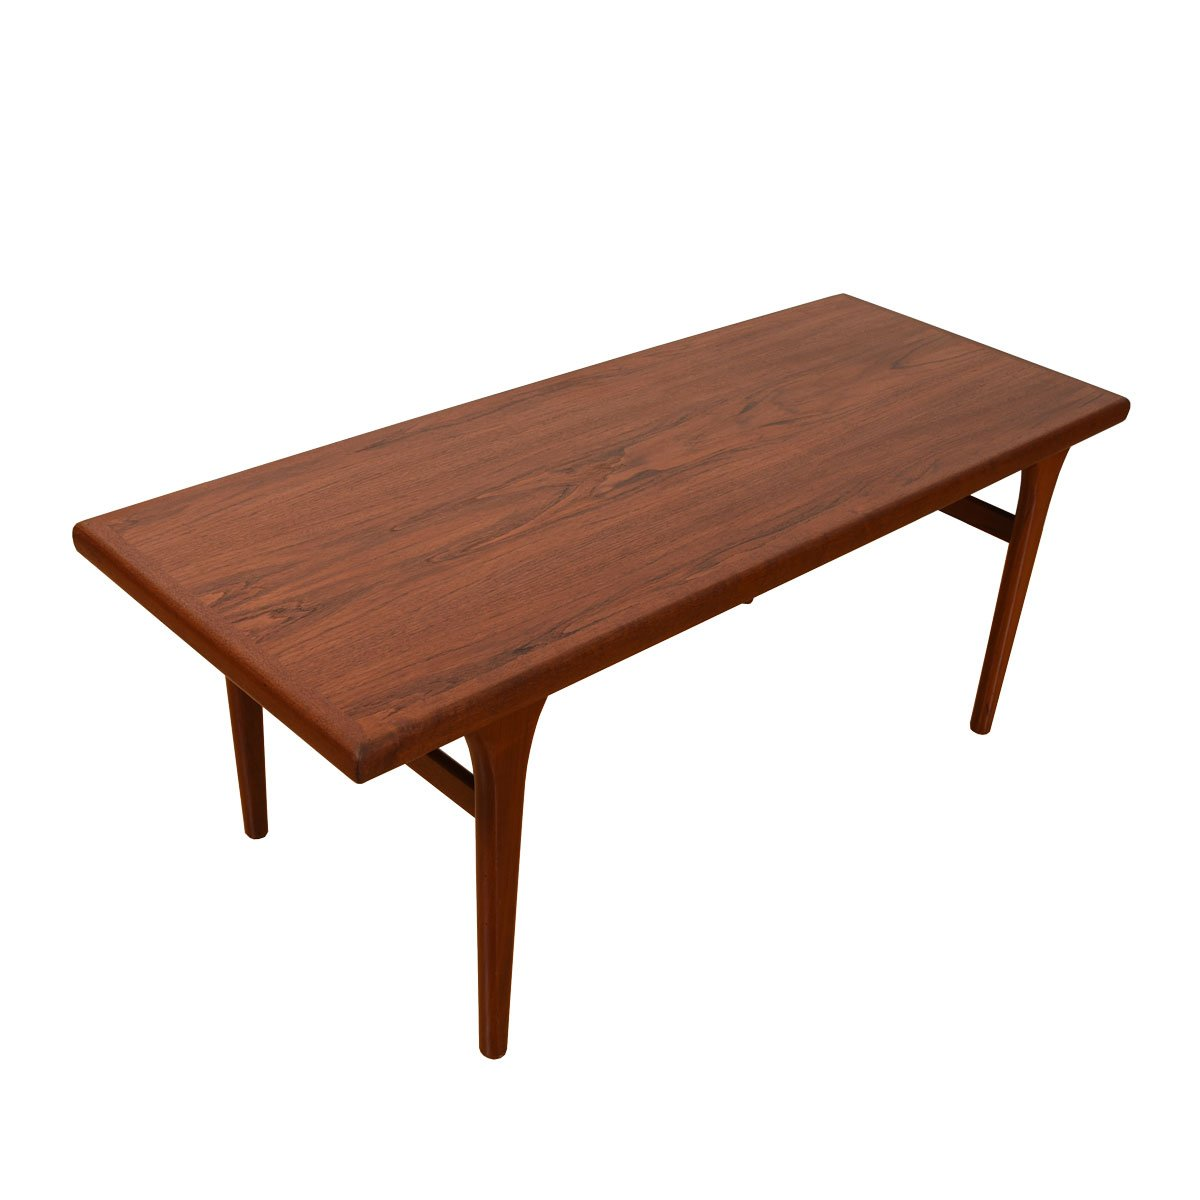 Danish Modern Tall Teak Coffee Table — Dinner at the Sofa?